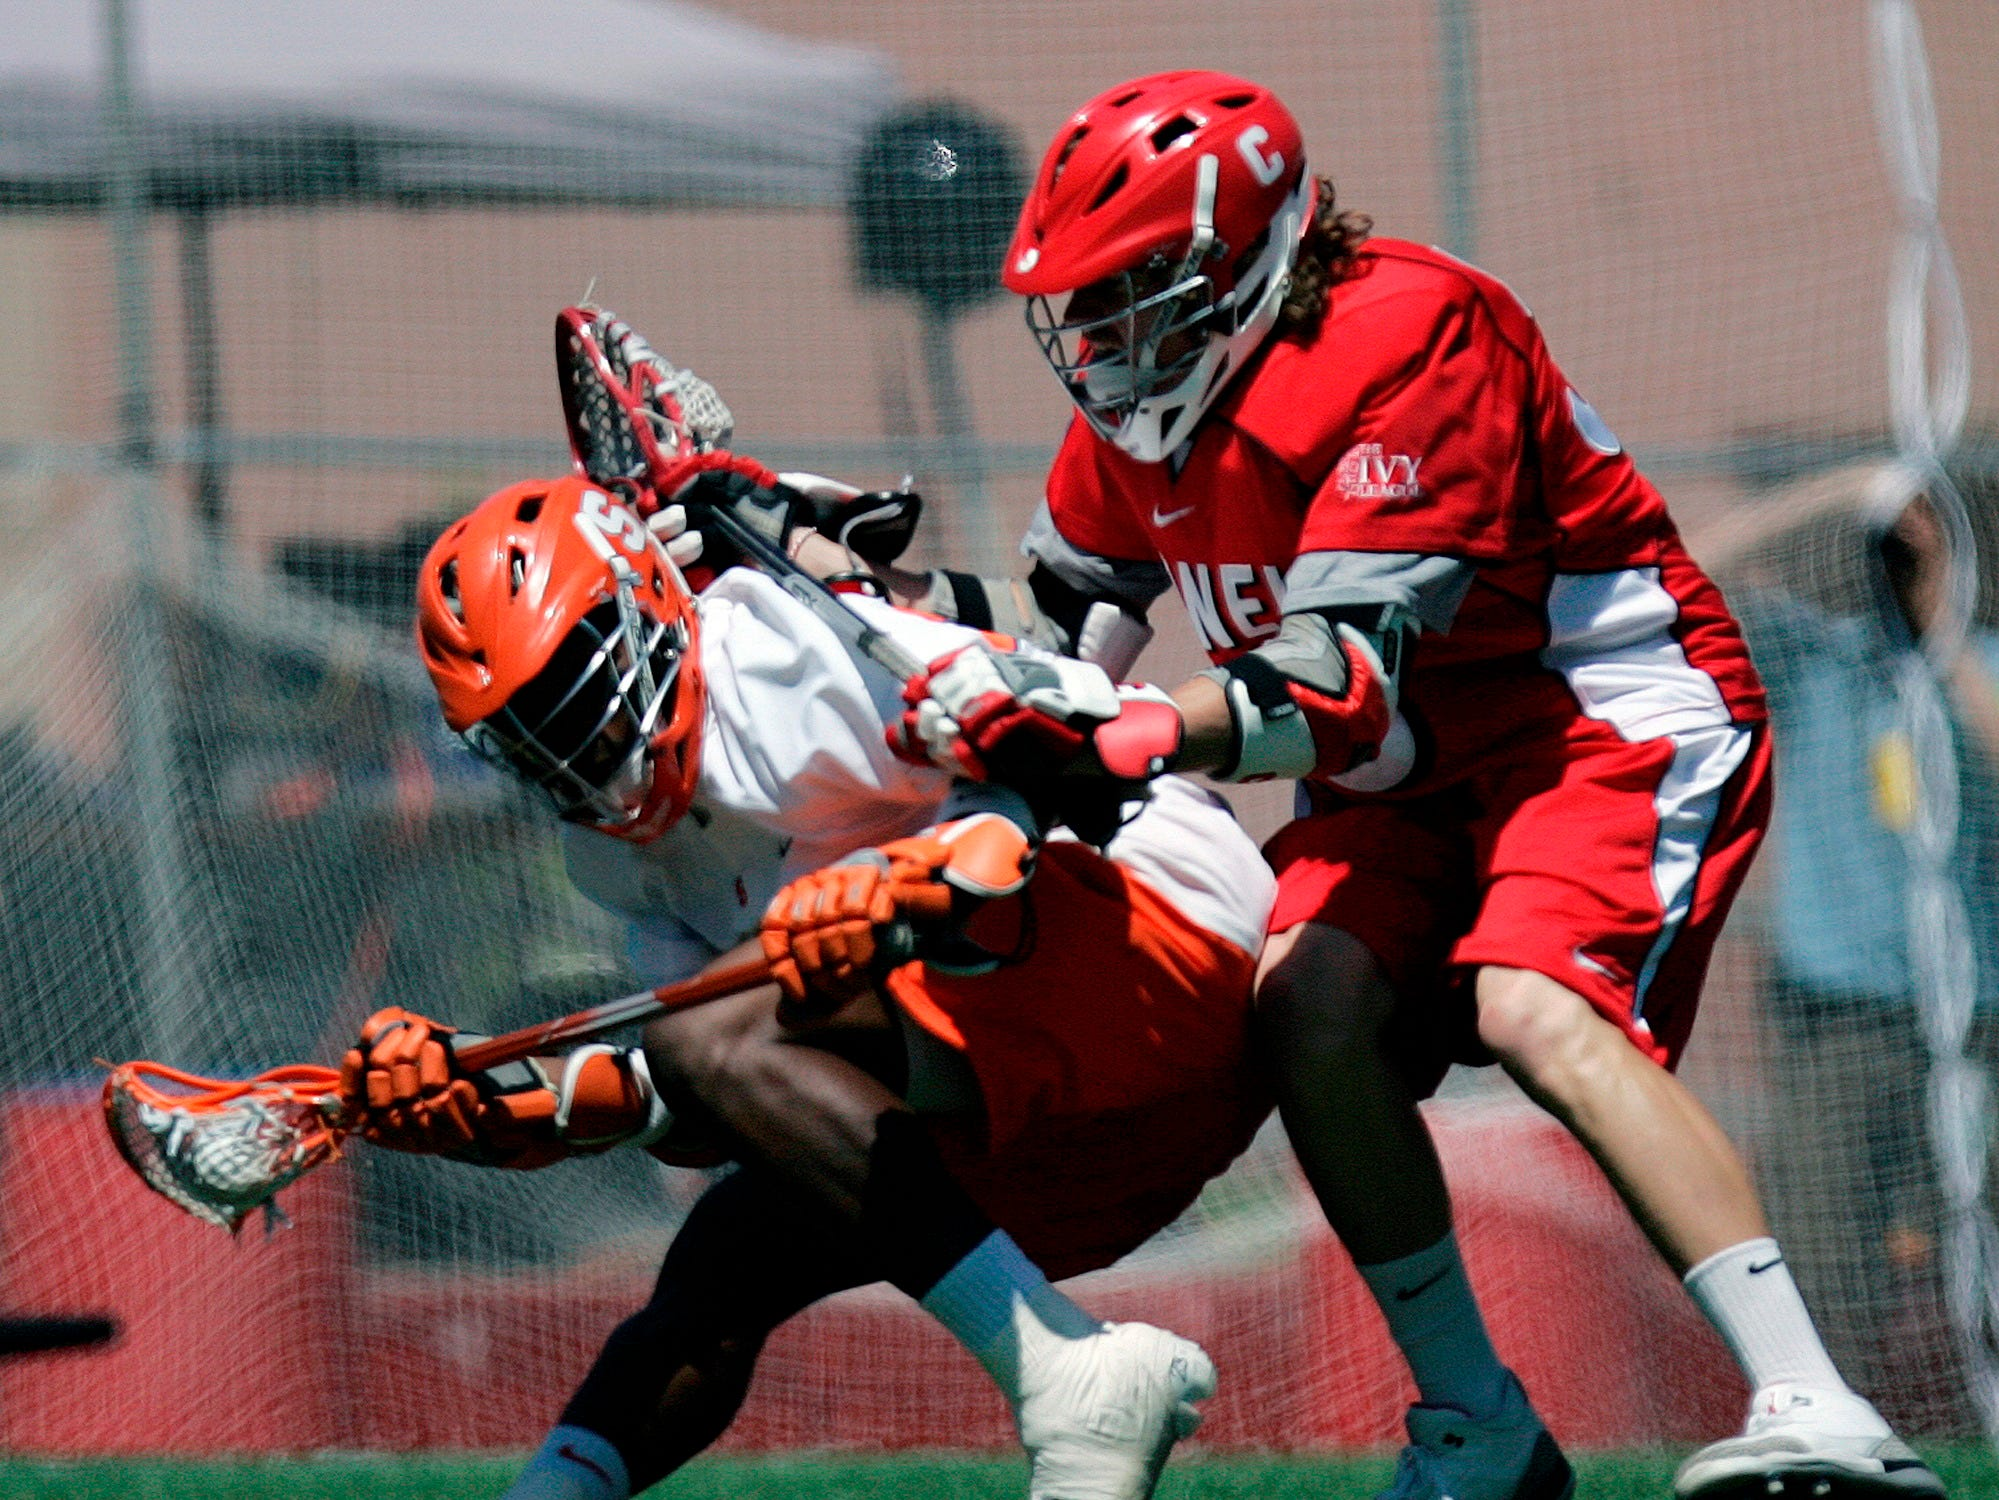 Cornell's Jonathan Thomson, right, checks Syracuse's Jovan Miller in the second quarter of an NCAA Division 1 Men's lacrosse championship game in Foxborough, Mass., Monday, May 25, 2009.